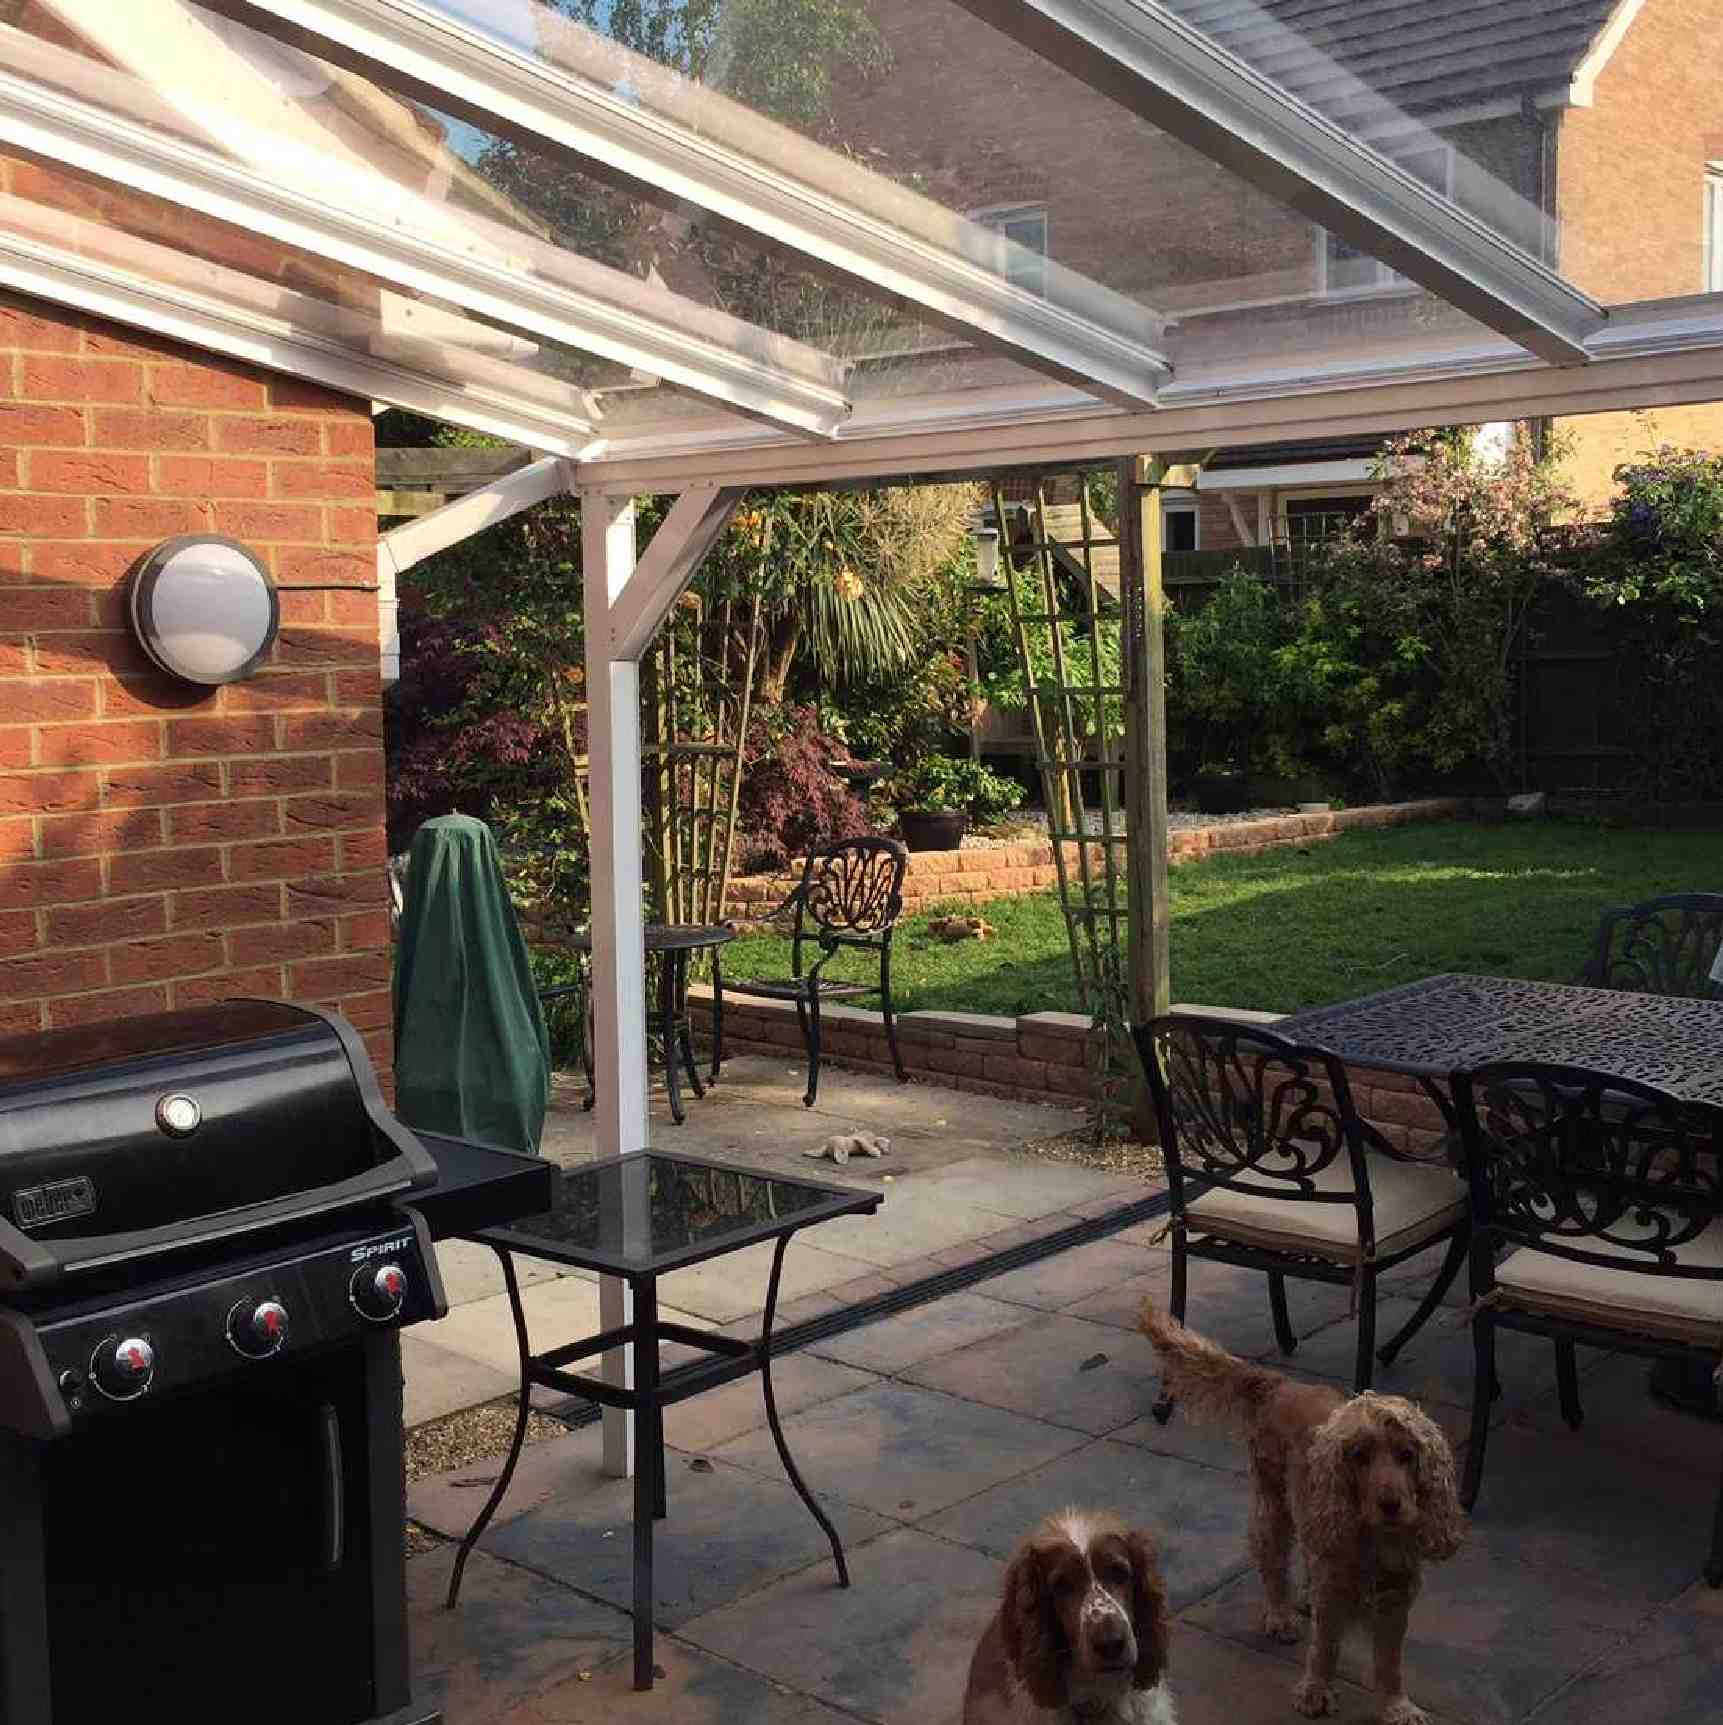 Omega Verandah with 16mm Polycarbonate Glazing - 4.2m (W) x 3.5m (P), (3) Supporting Posts